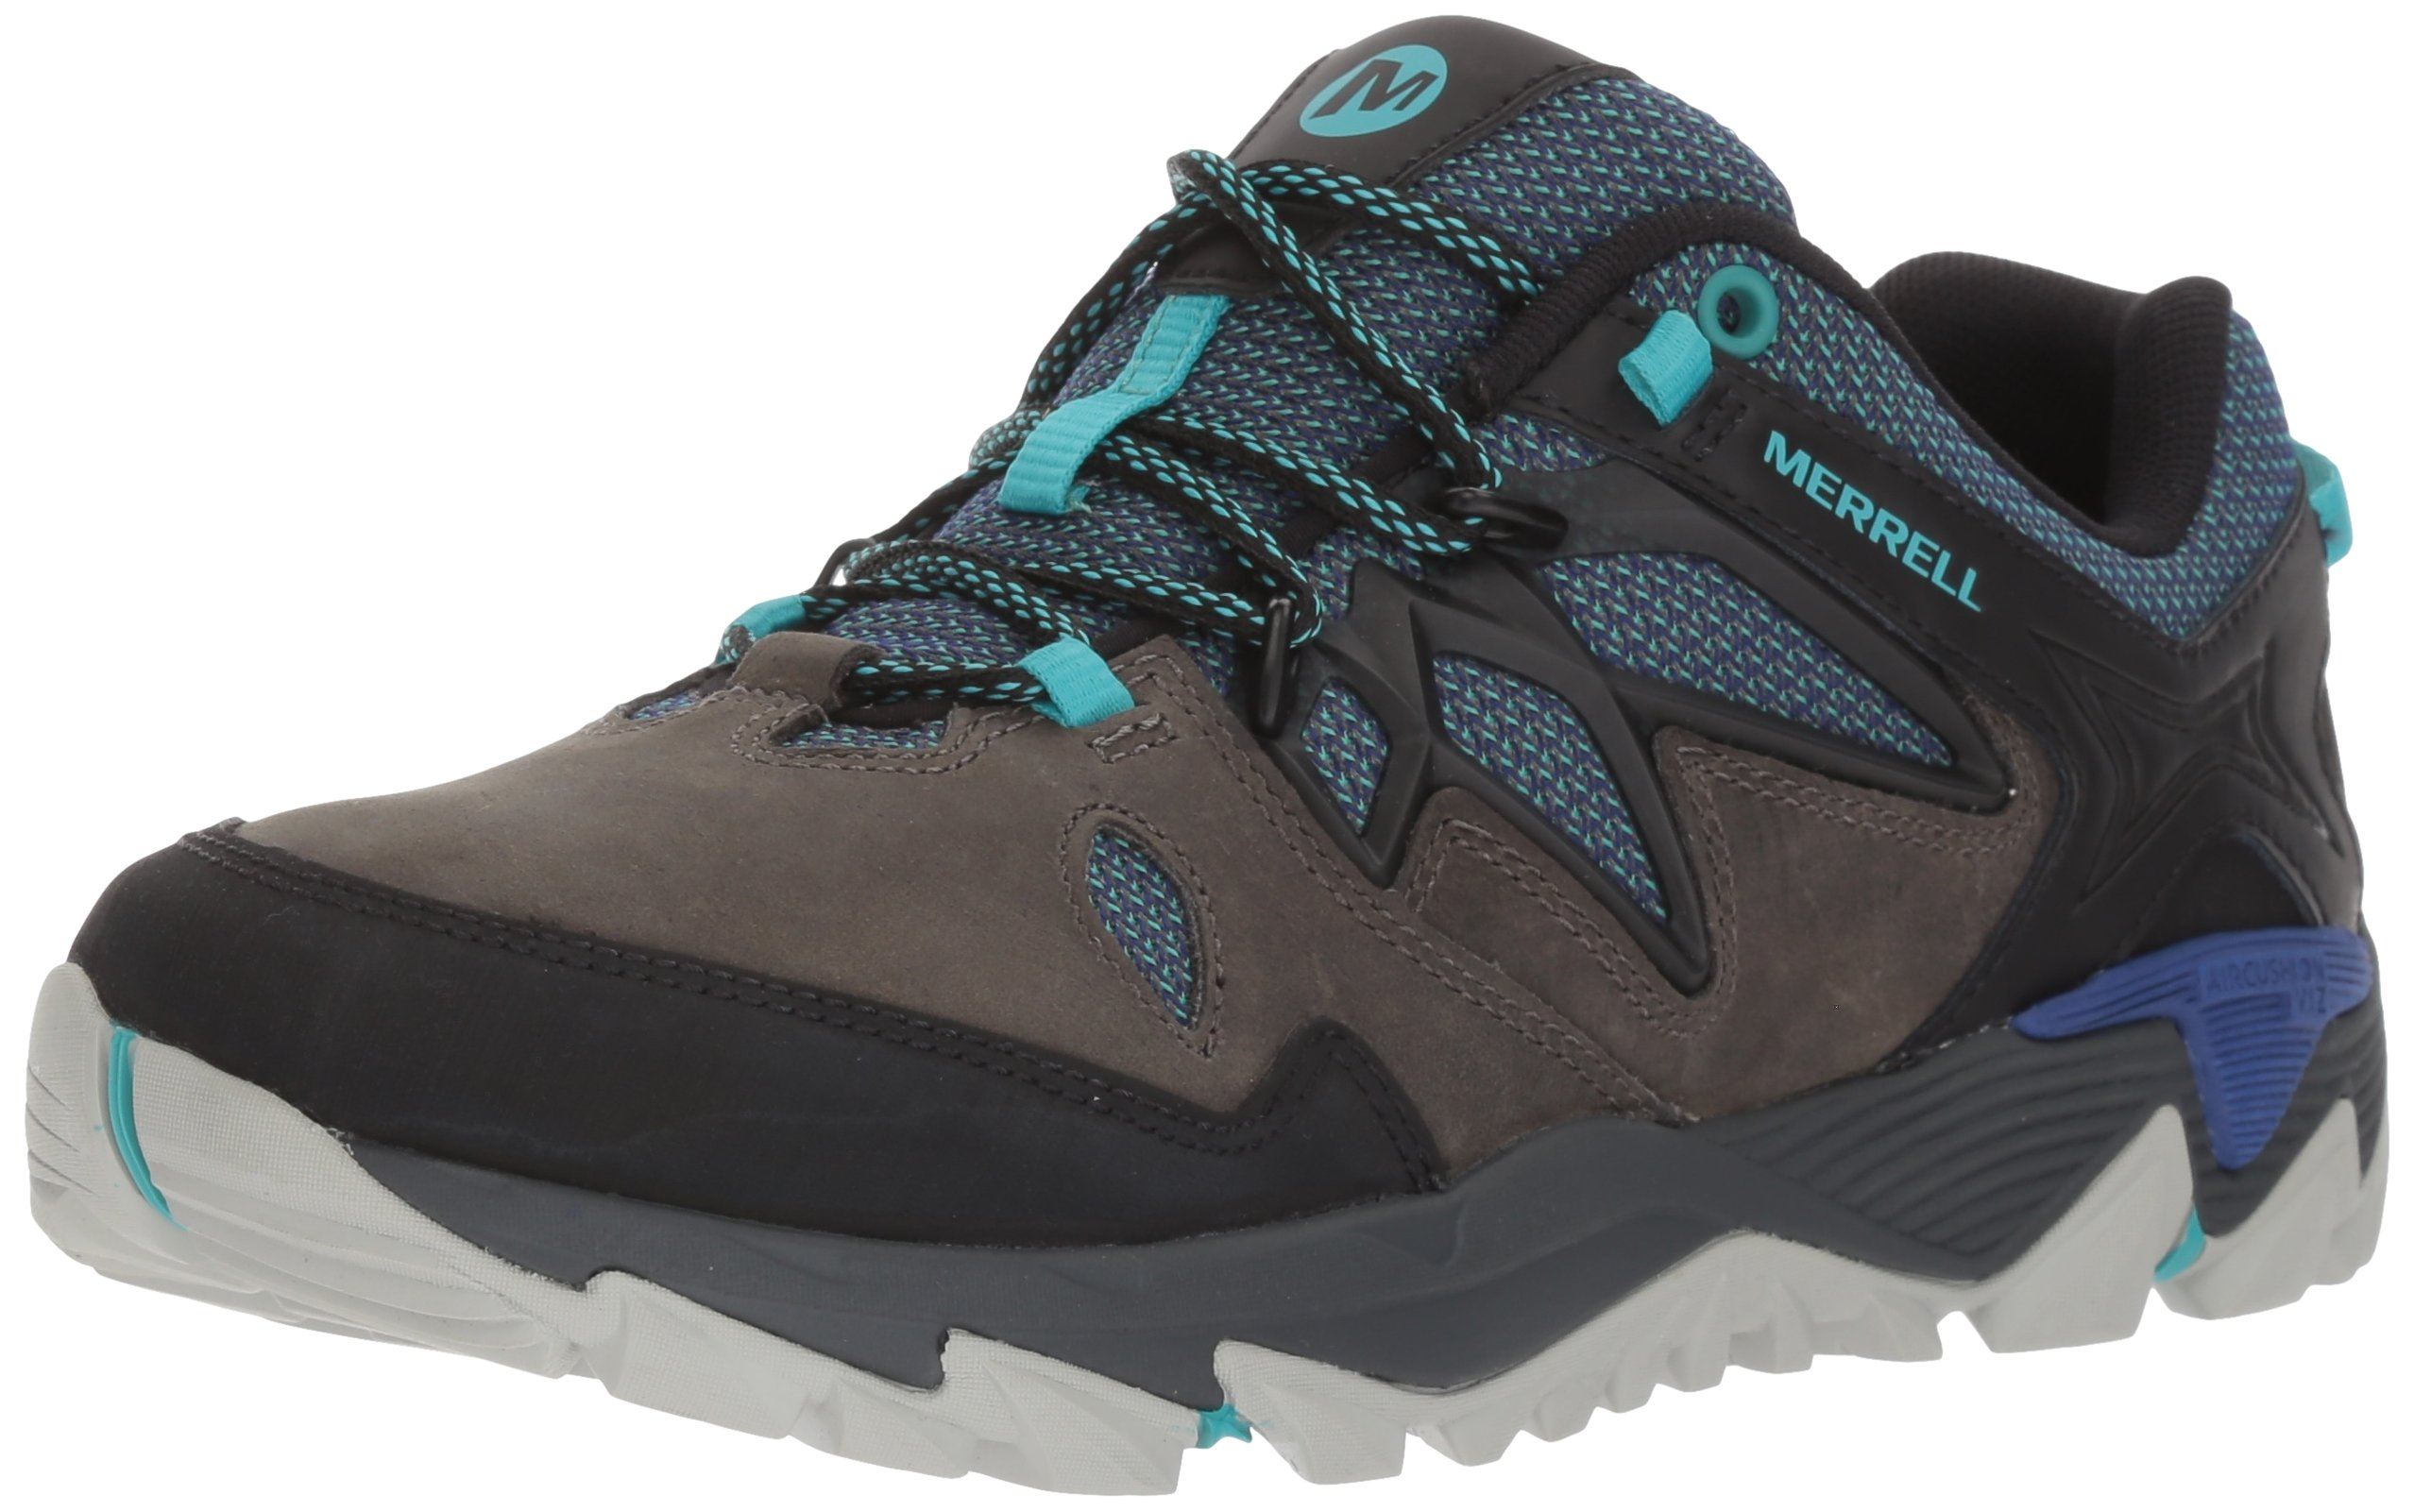 Merrell Women's All Out Blaze 2 Hiking Shoe, Pewter/Mazarine Blue, 6 M US by Merrell